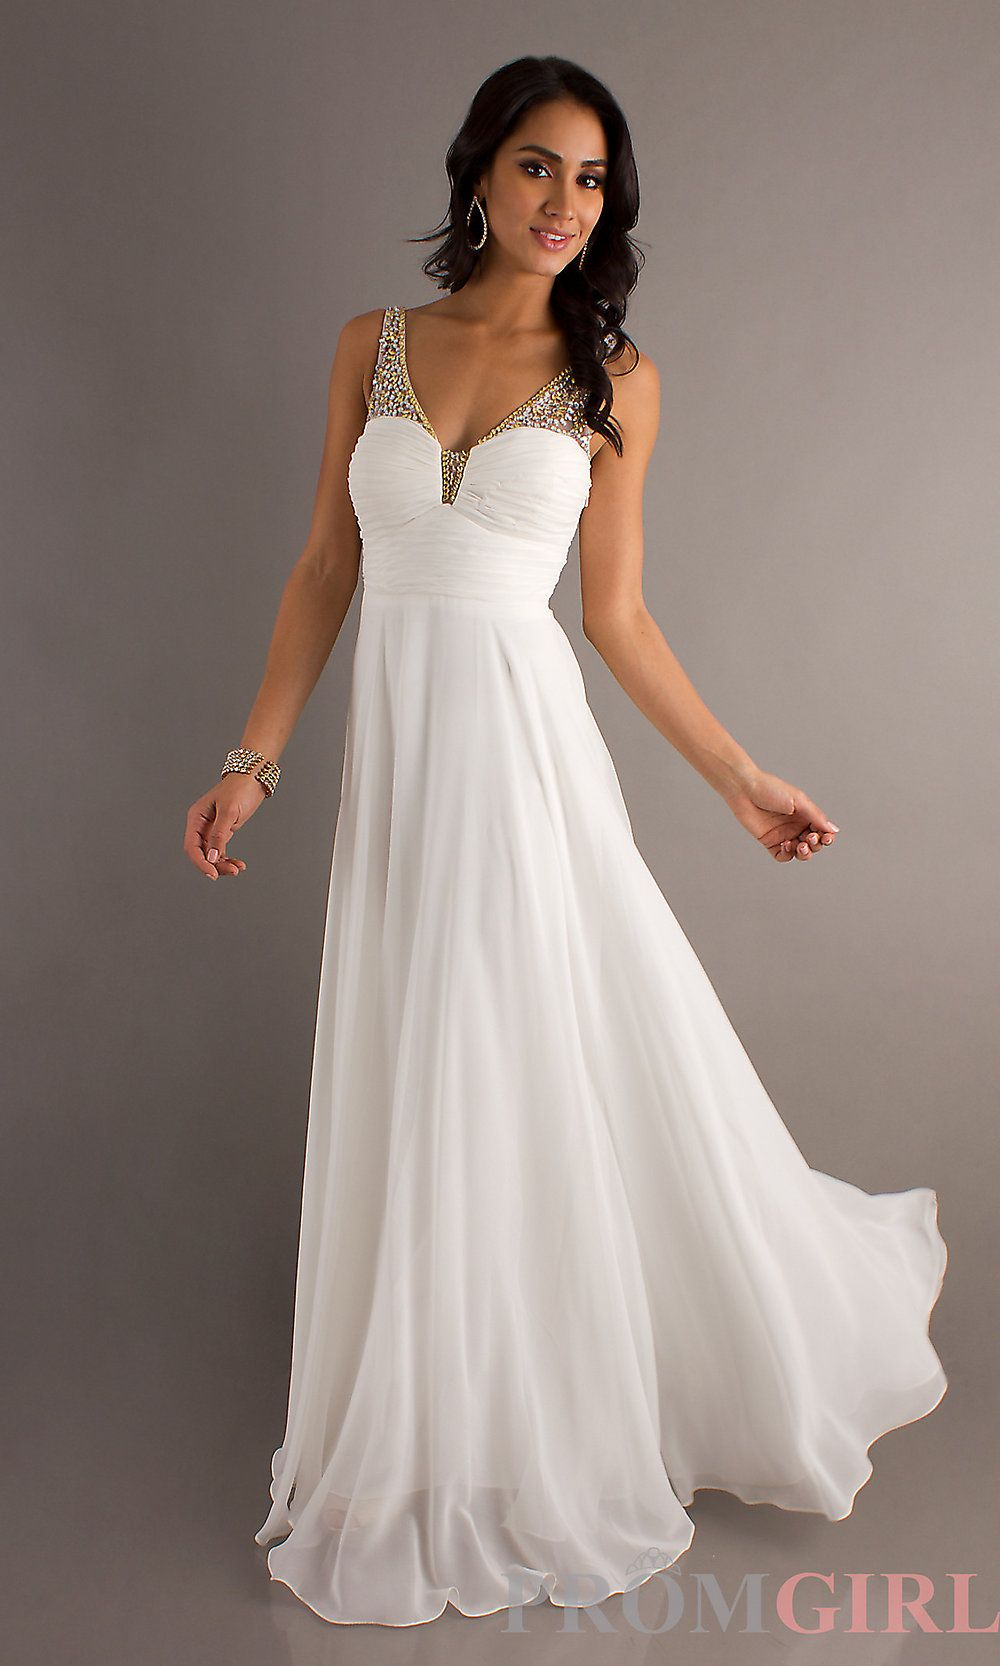 Ivory Dresses | Sleeveless Ivory Prom Gowns, Dave and Johnny Long ...